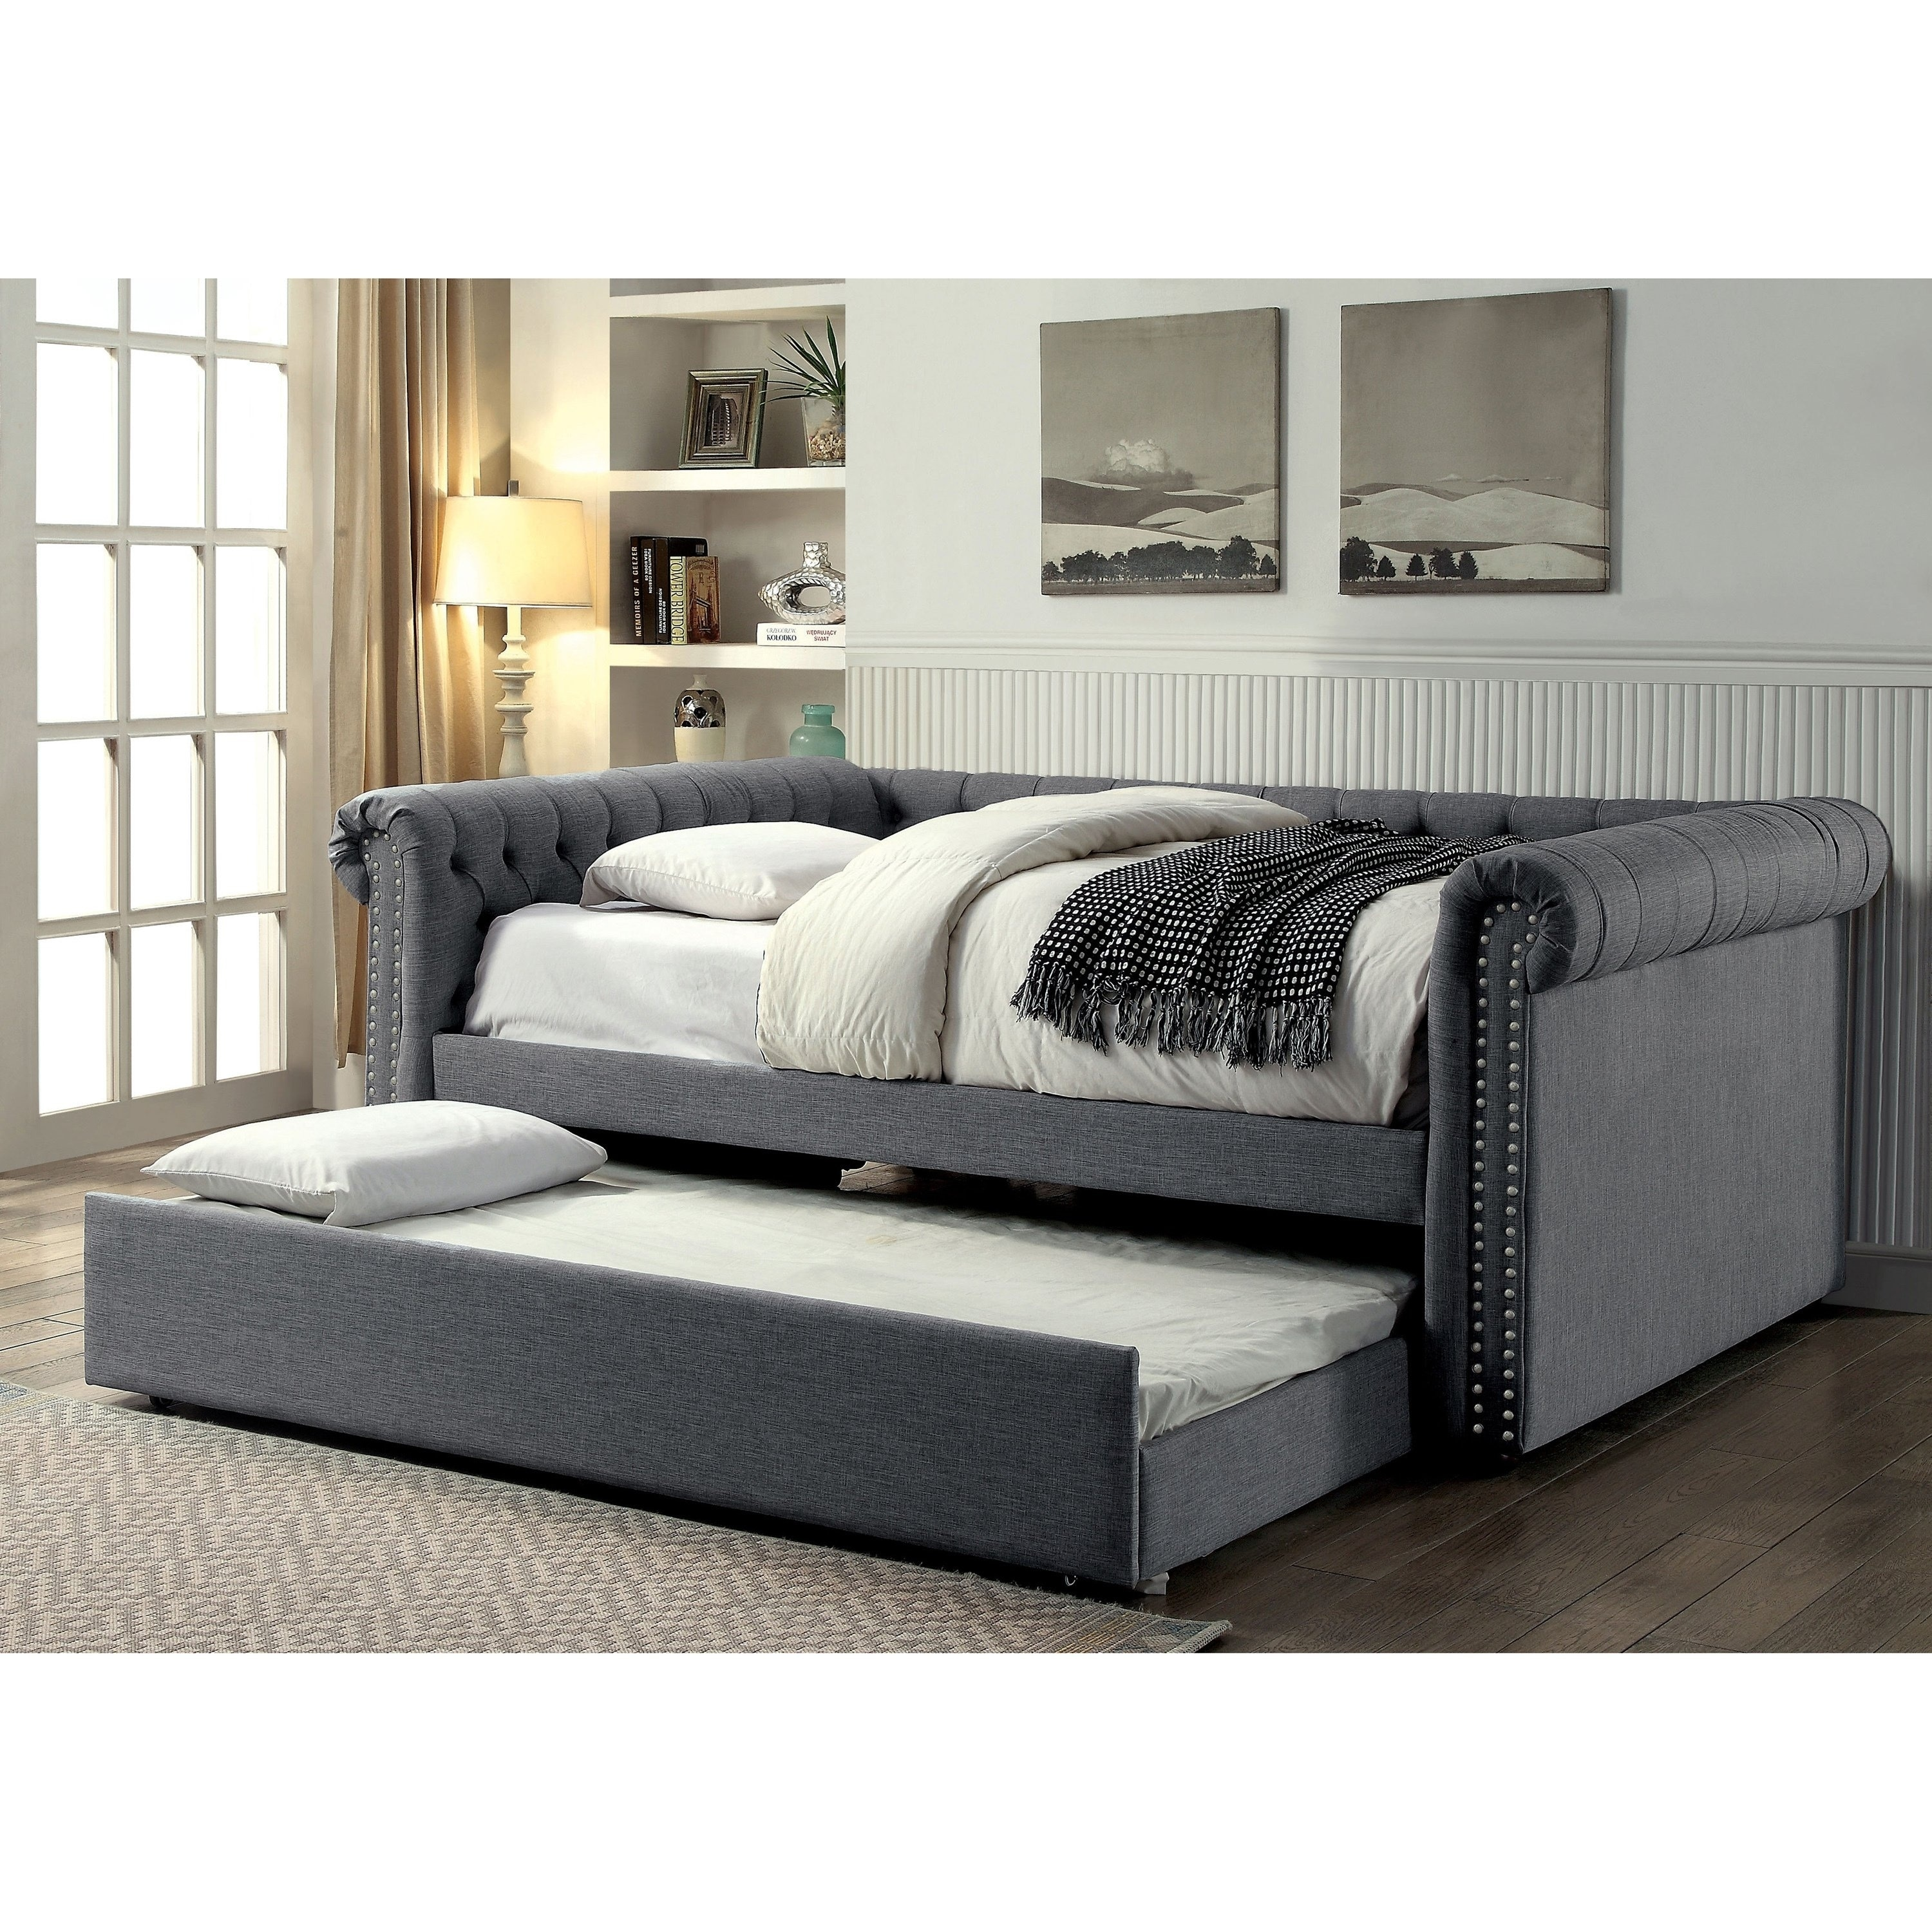 Shop Nellie Contemporary 2 Piece Daybed With Twin Trundle Set By Foa